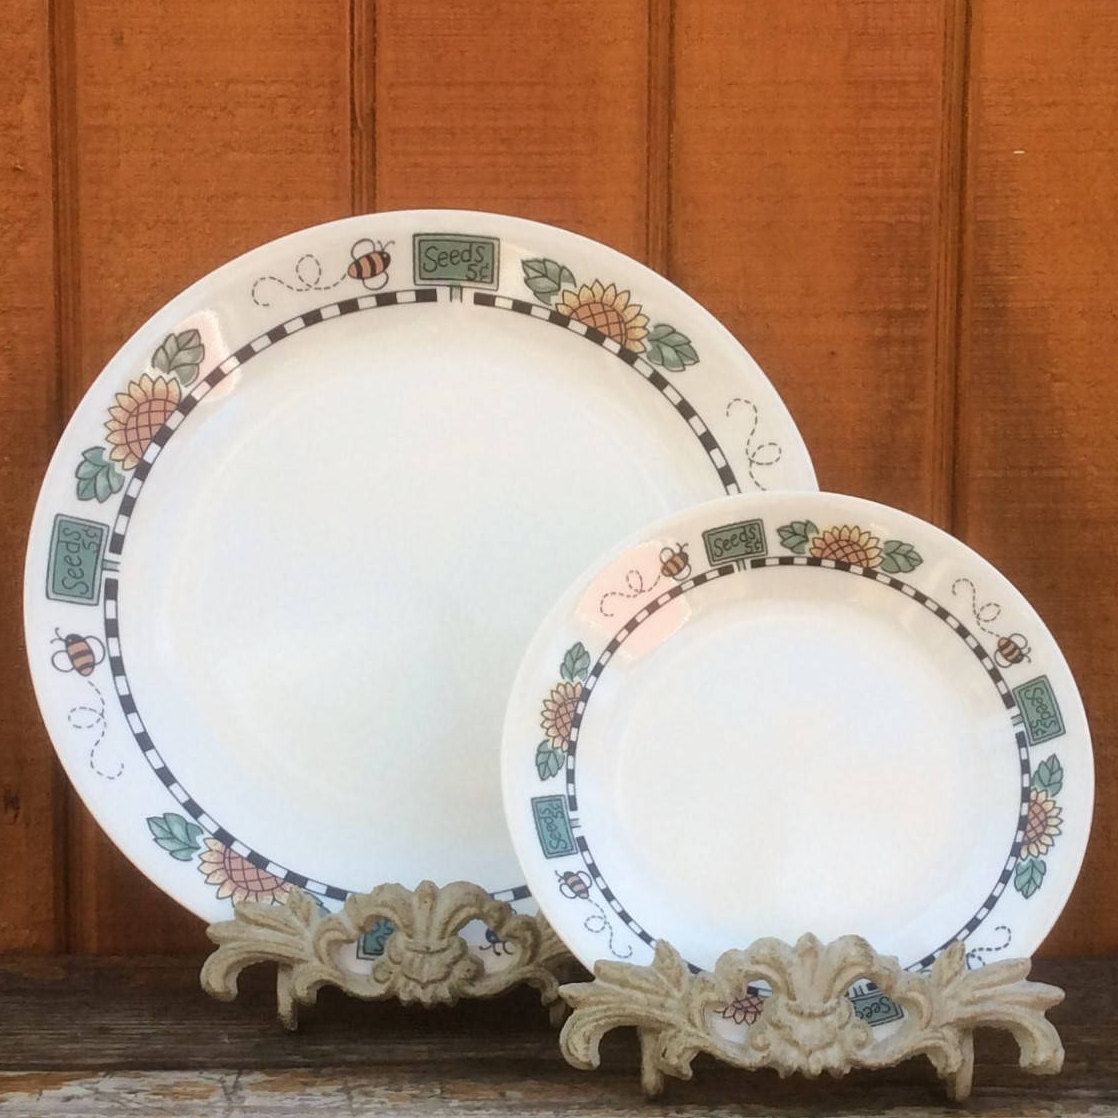 Sunblossoms Dishes | Corelle PYREX Corning | Dinner Plates & Bread ...